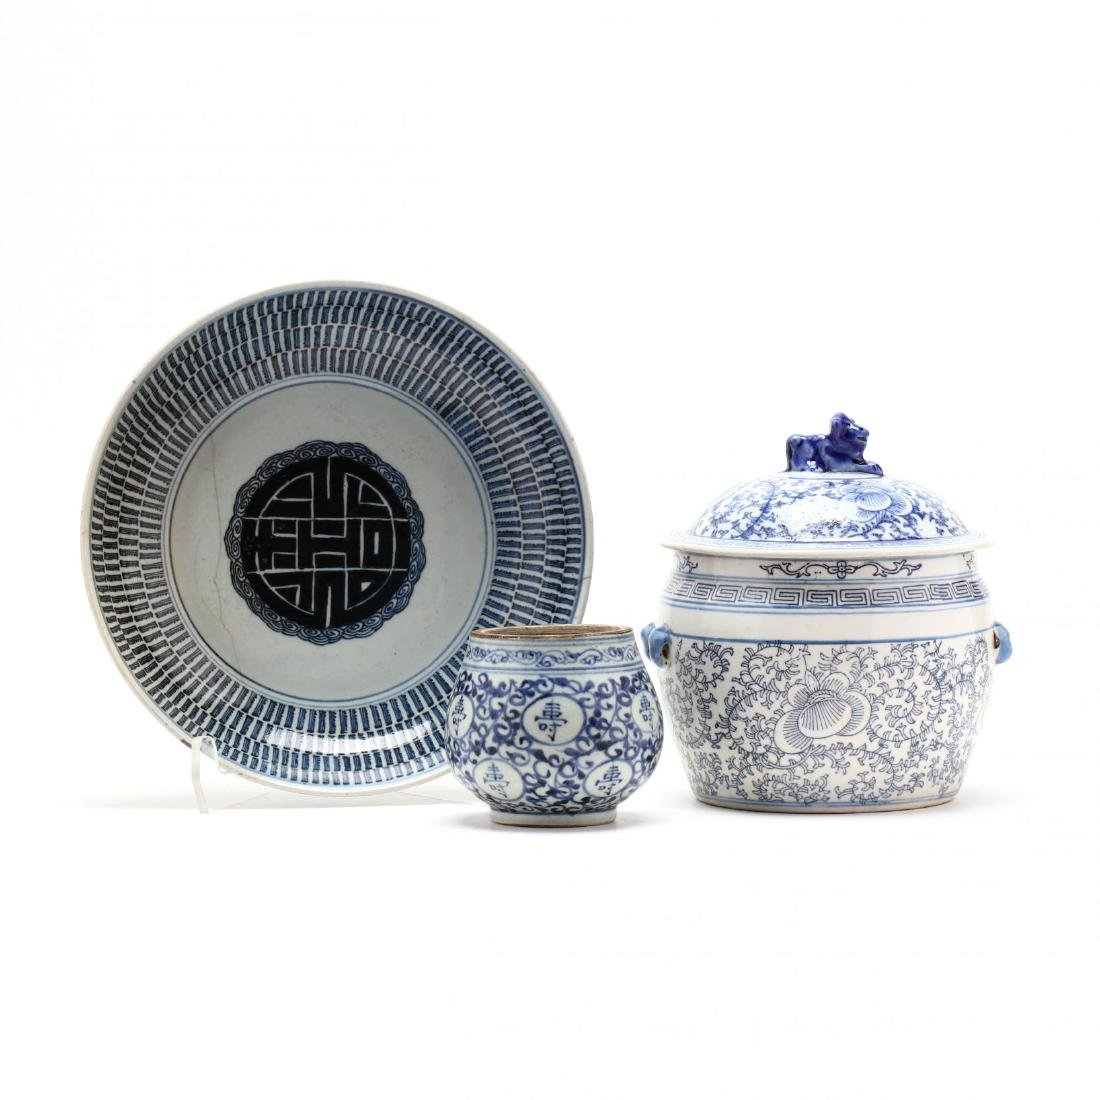 A Group of Chinese Blue and White Porcelain Ceramics